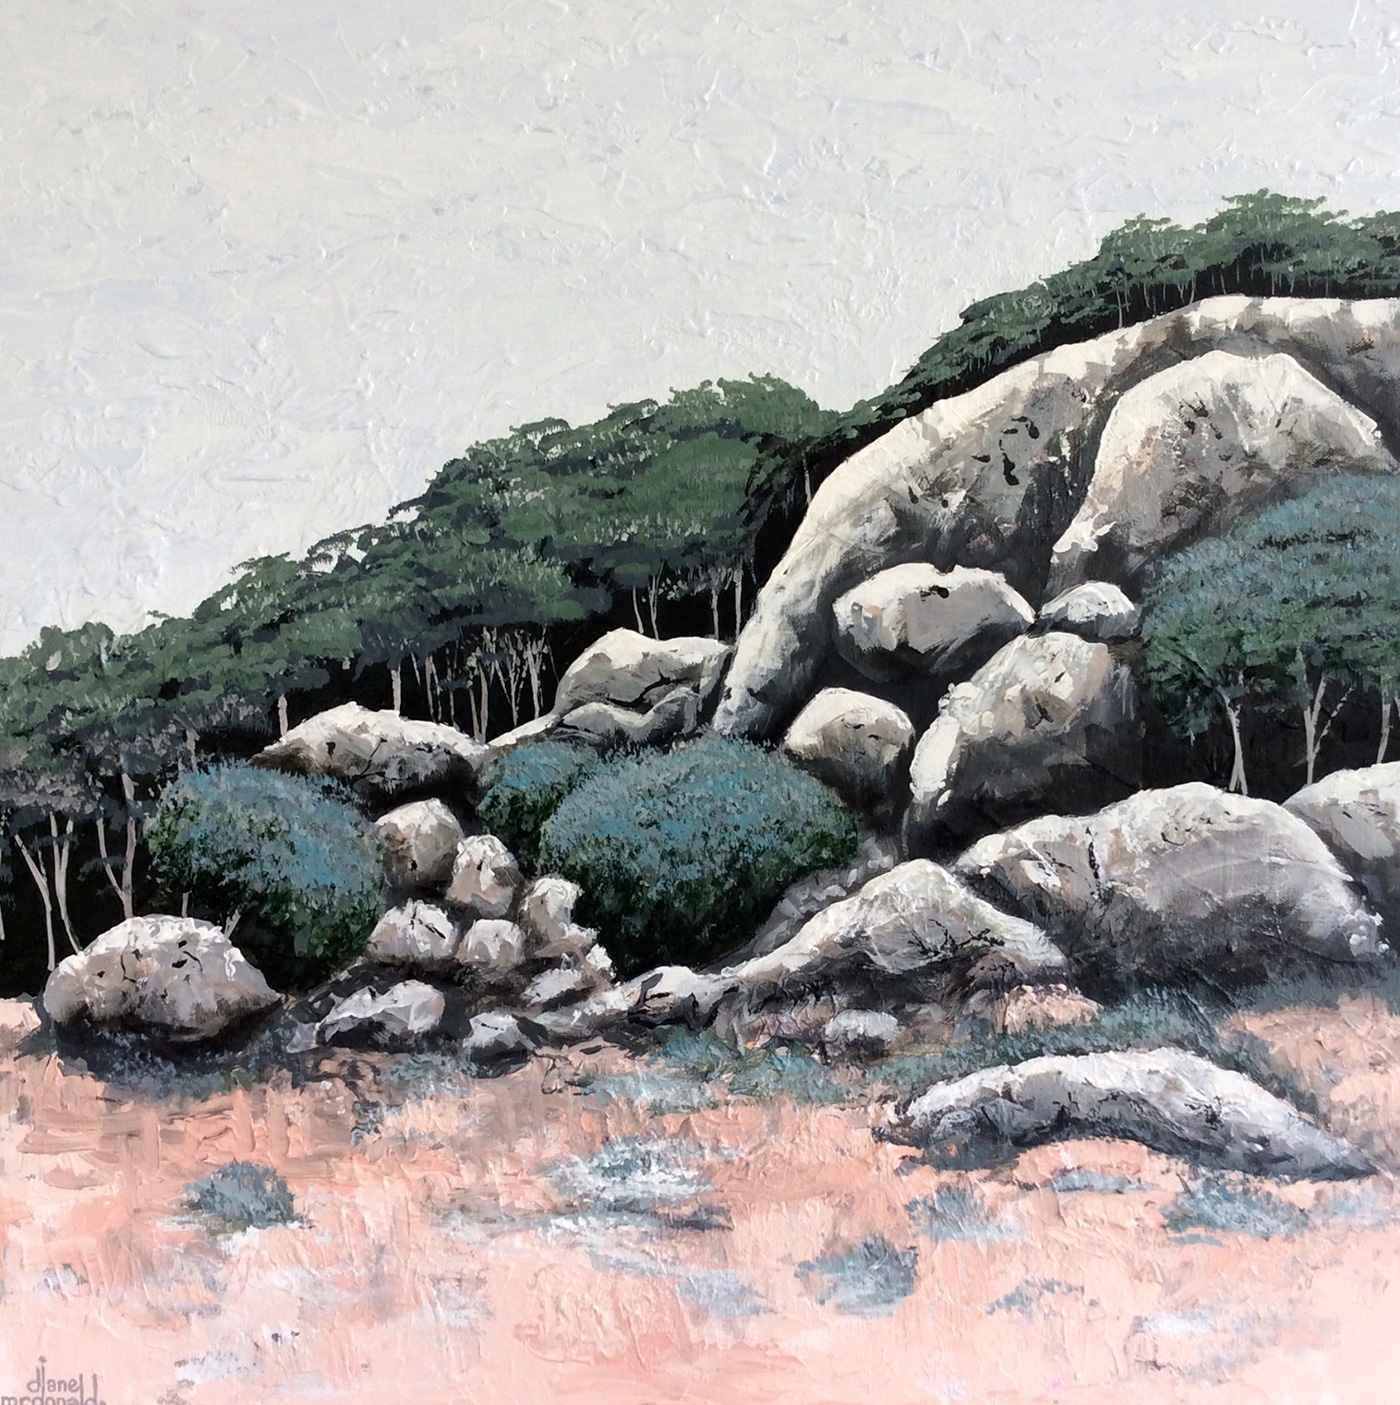 Lost Among the Boulders